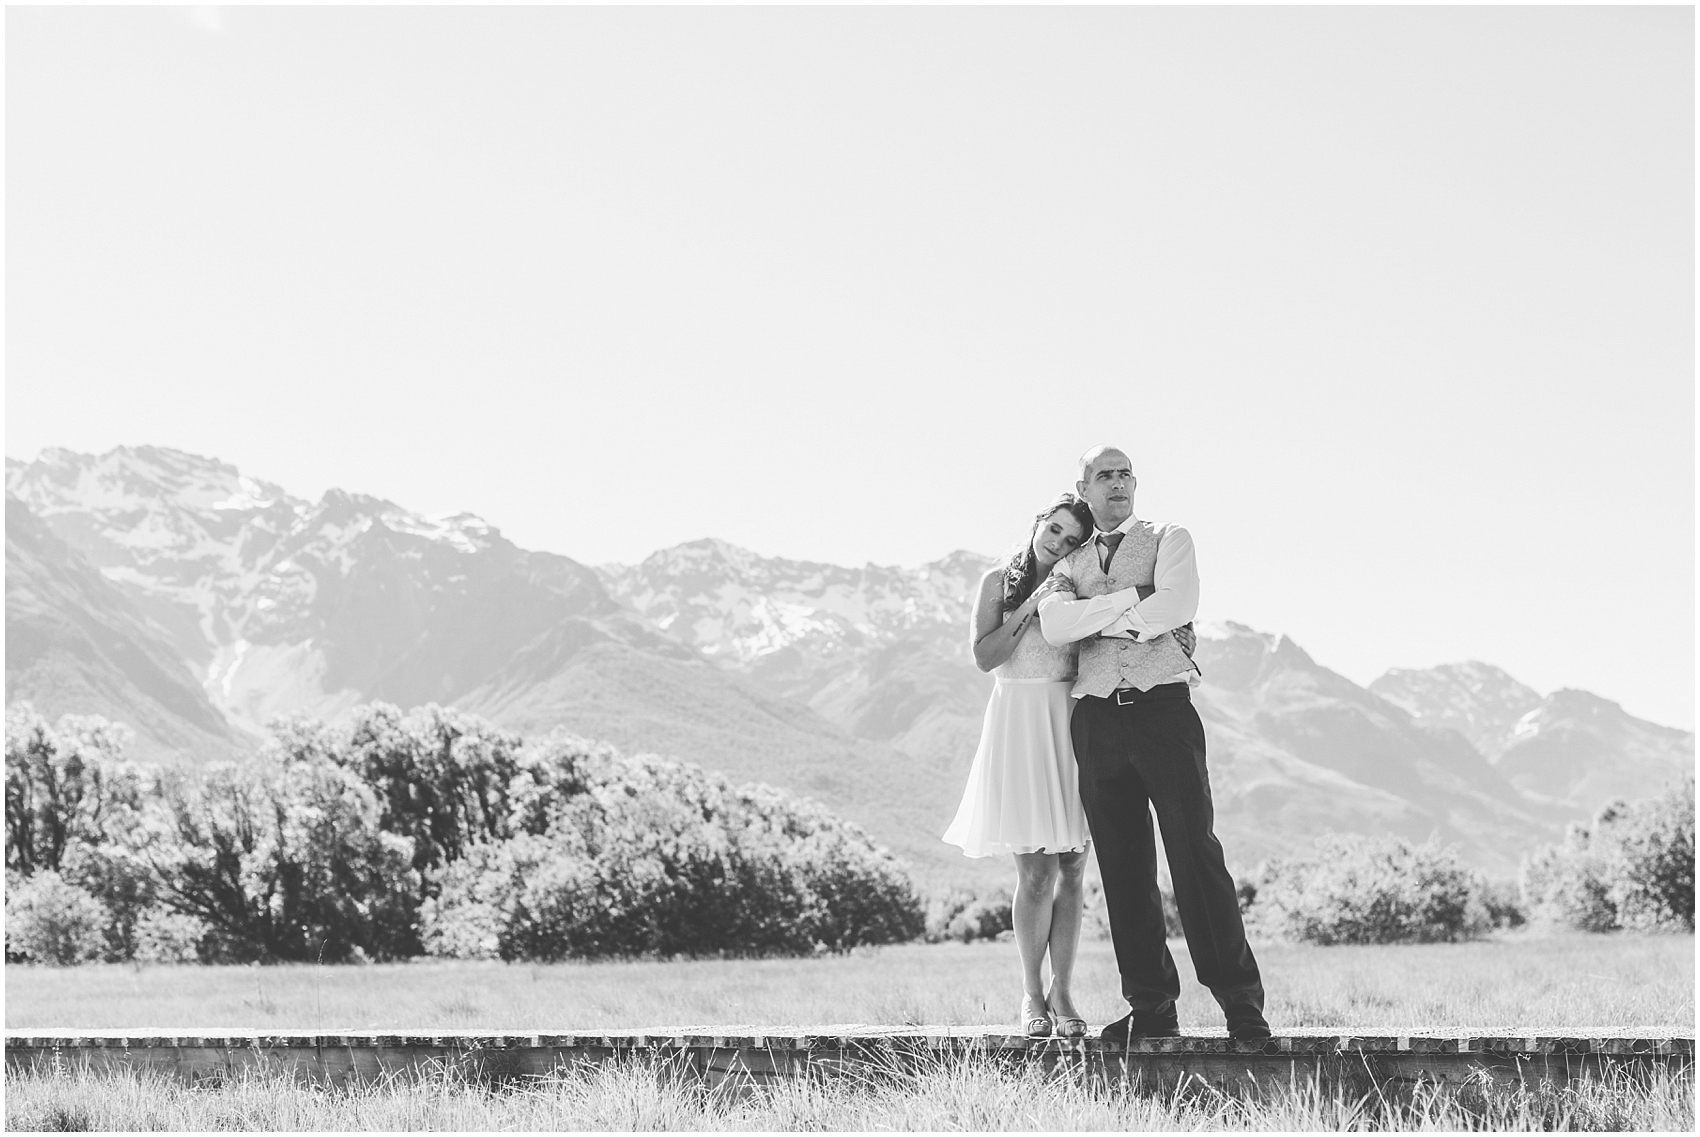 Queenstown New Zealand Wedding Photographer Bruna Fabricio Smetona Photo-0048.jpg